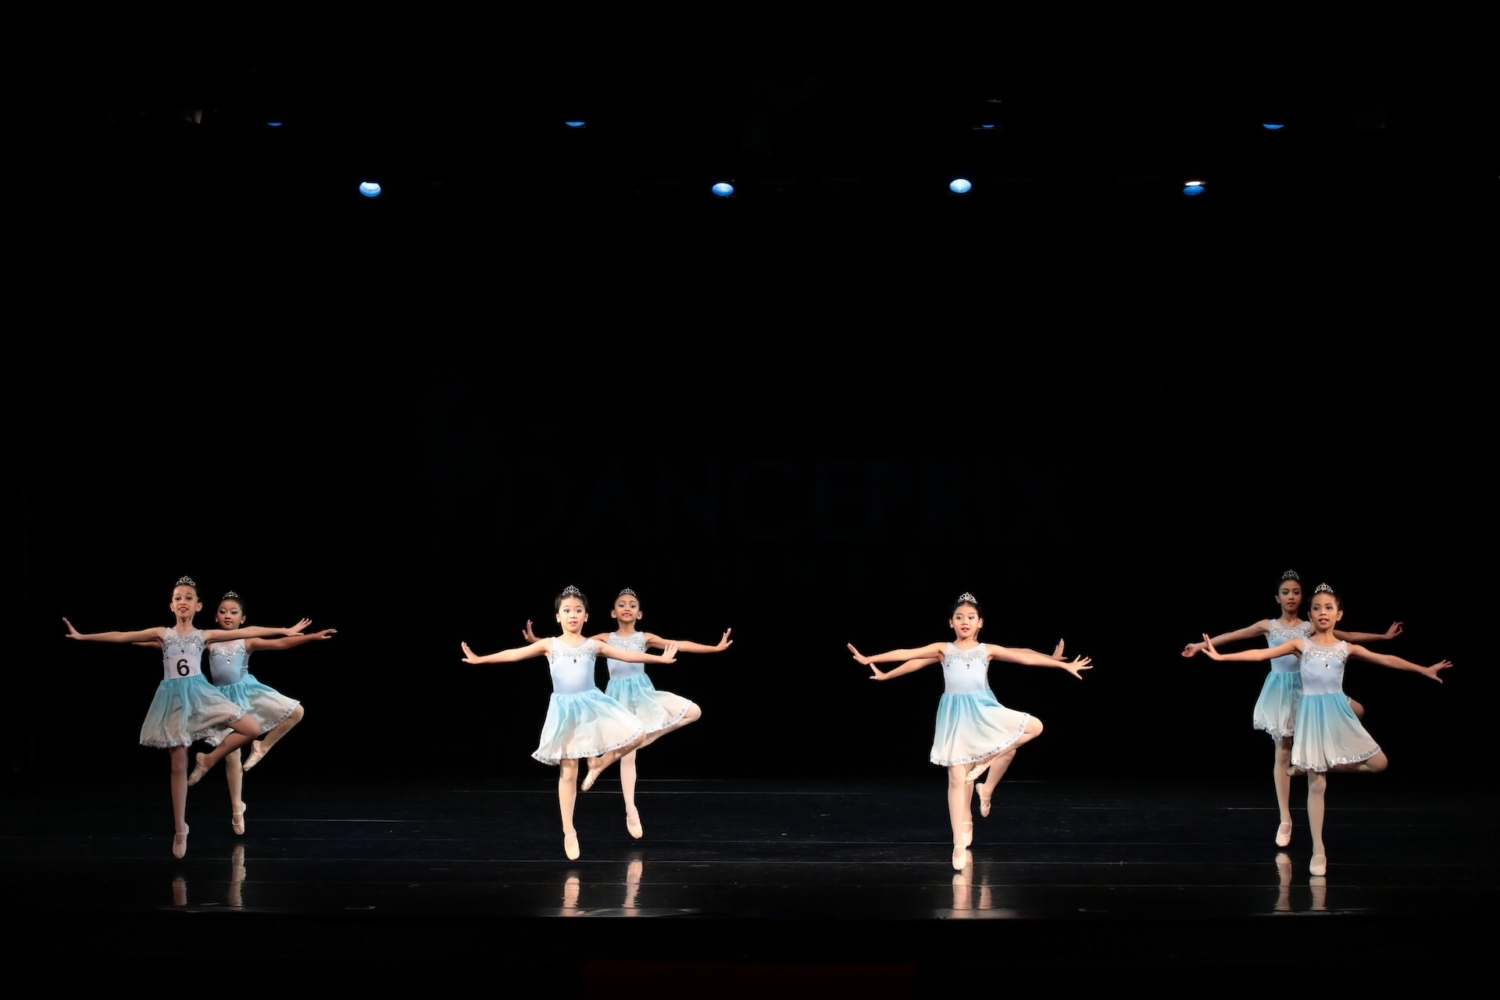 Dance Prix Indonesia 2019 – Ballet Group 3rd Place, LETHALORA (Namarina Dance Academy)